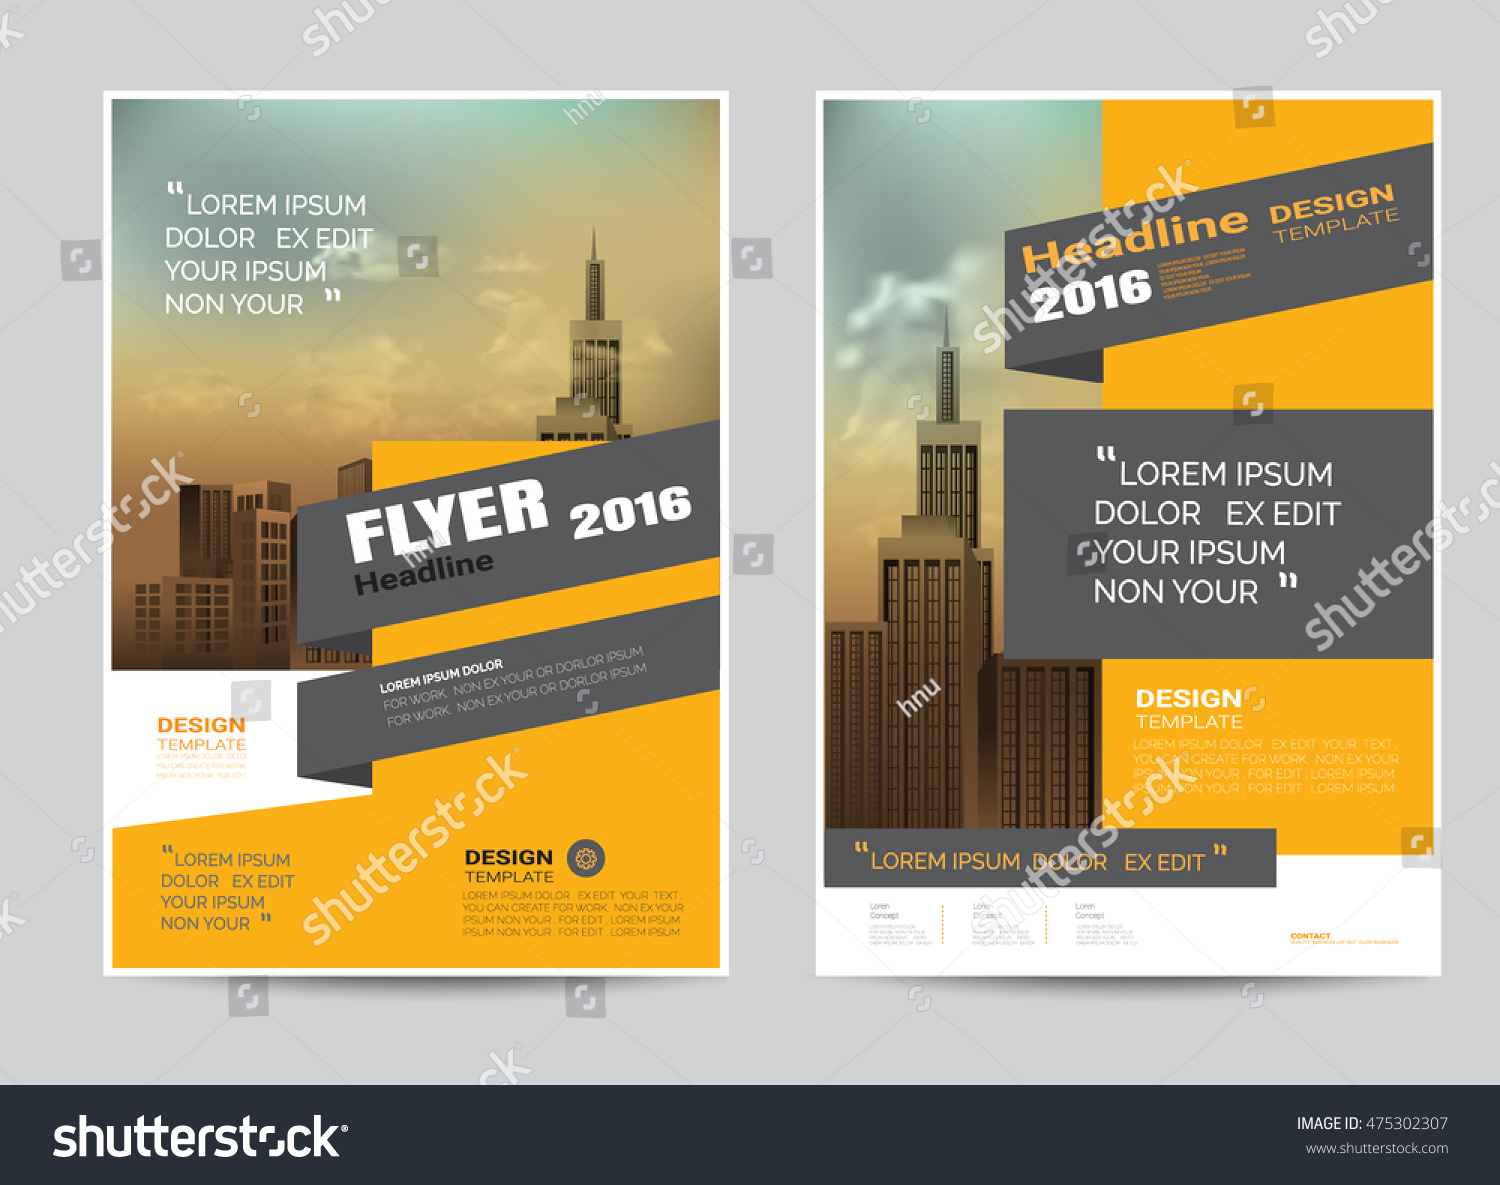 corporate brochure flyer design layout template stock vector corporate brochure flyer design layout template in a4 size modern style vector